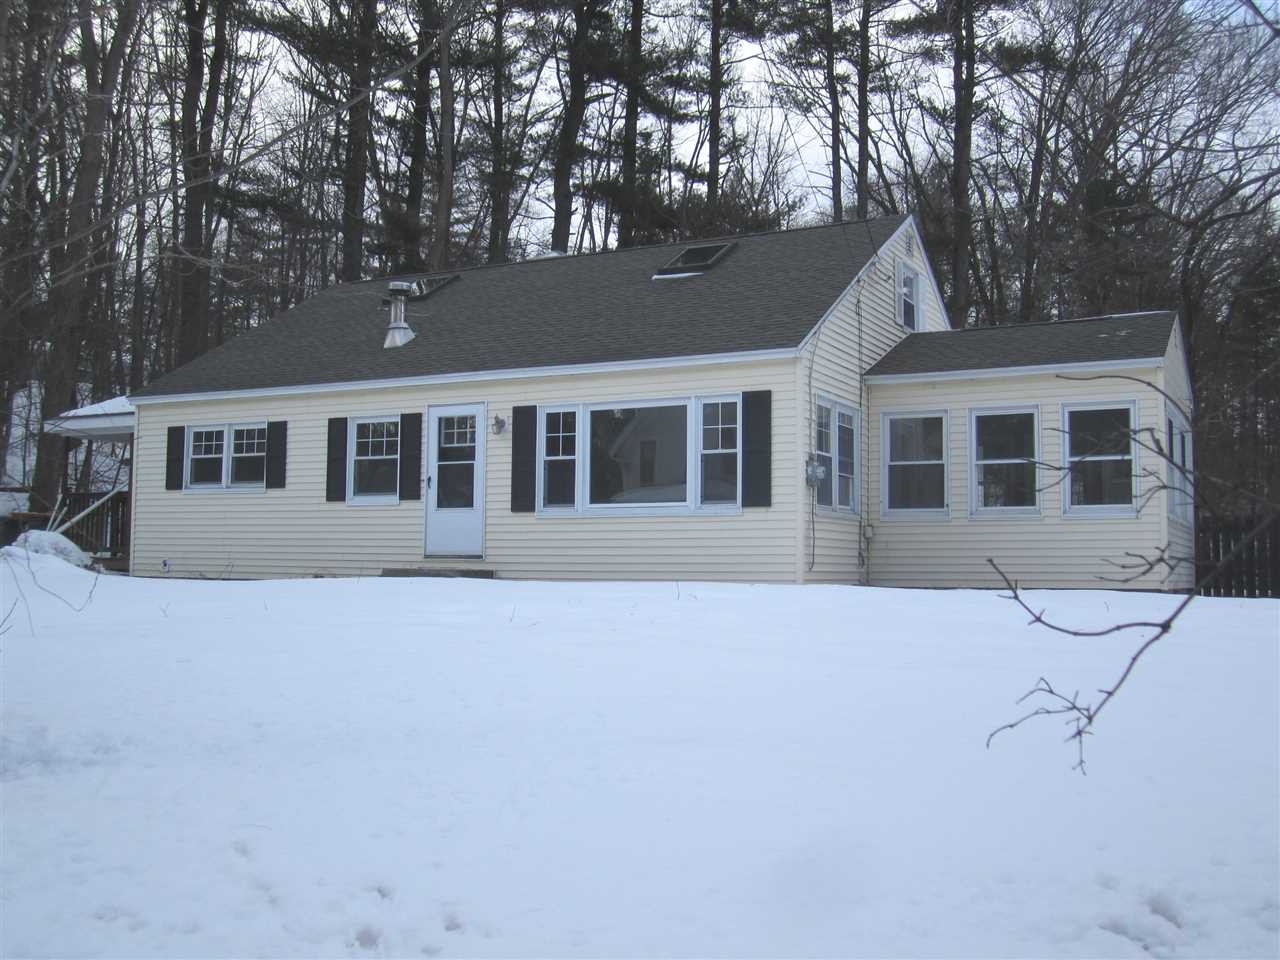 Photo of 30 Pine Street Hooksett NH 03106